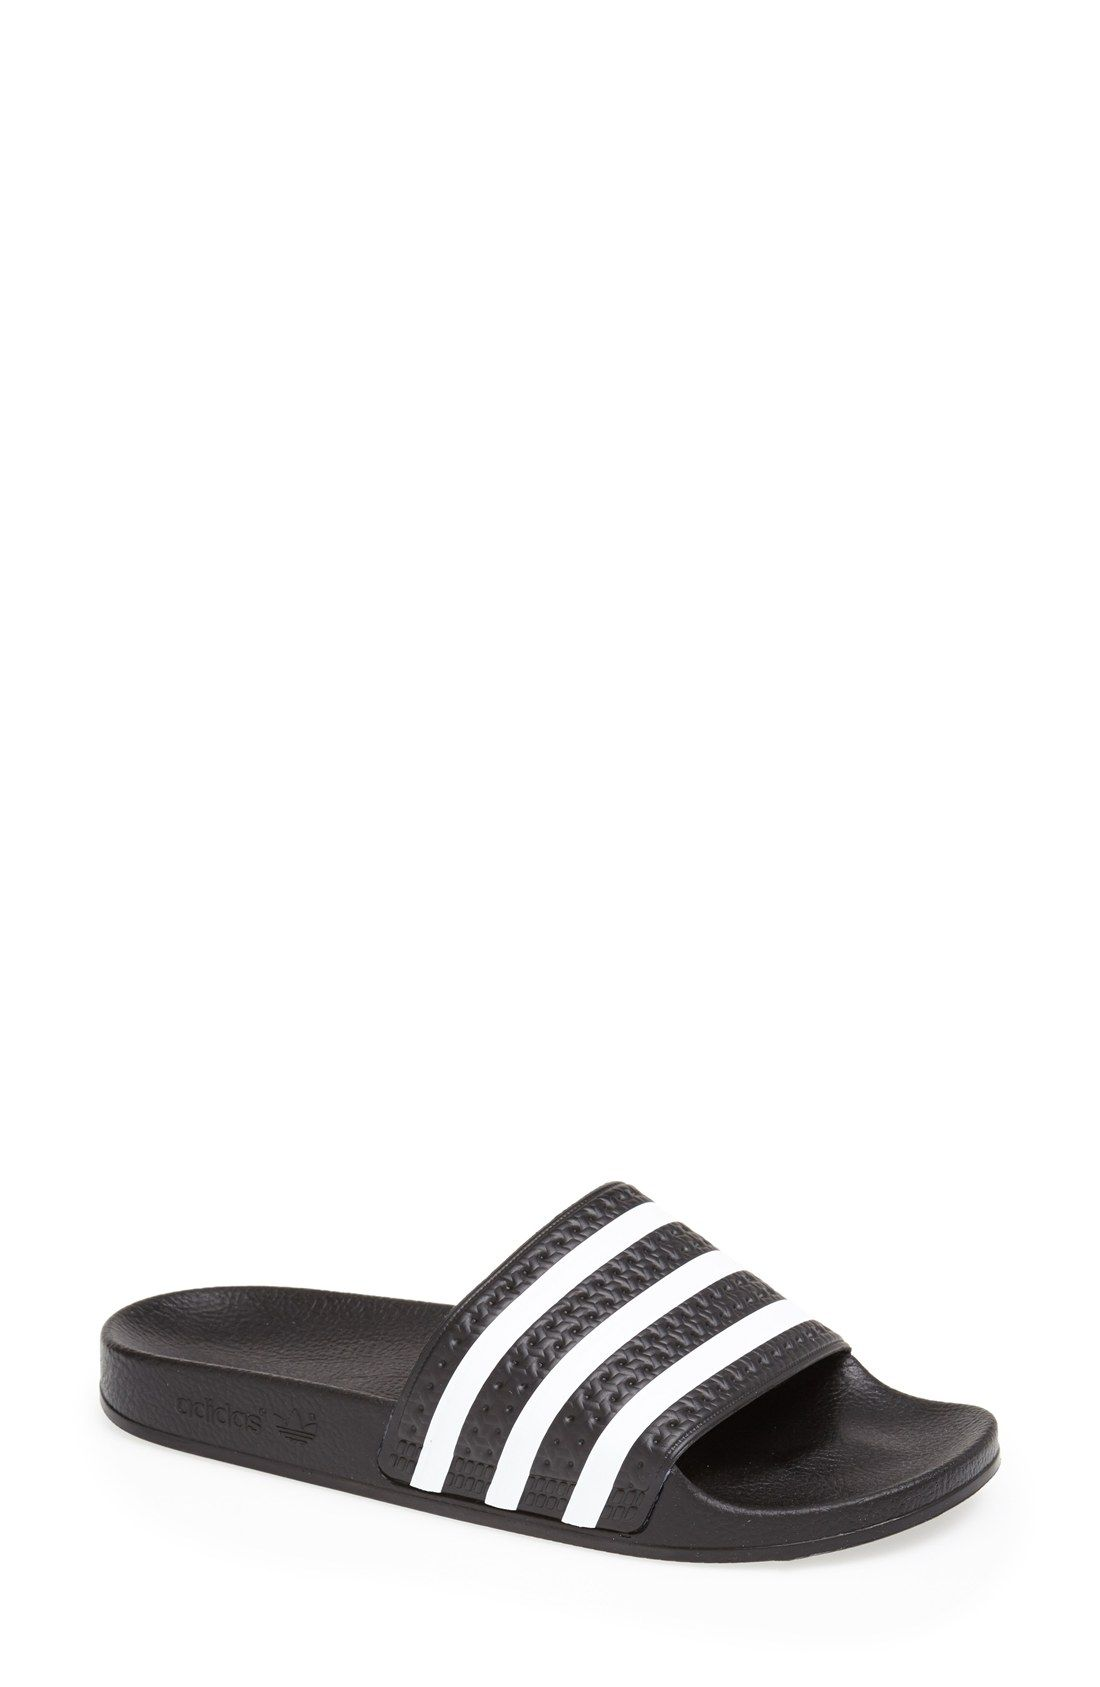 the best attitude b83ab 63329 Pin by nprdd on Shoes in 2019   Adidas sandals, Adidas shoes women, Adidas  slides